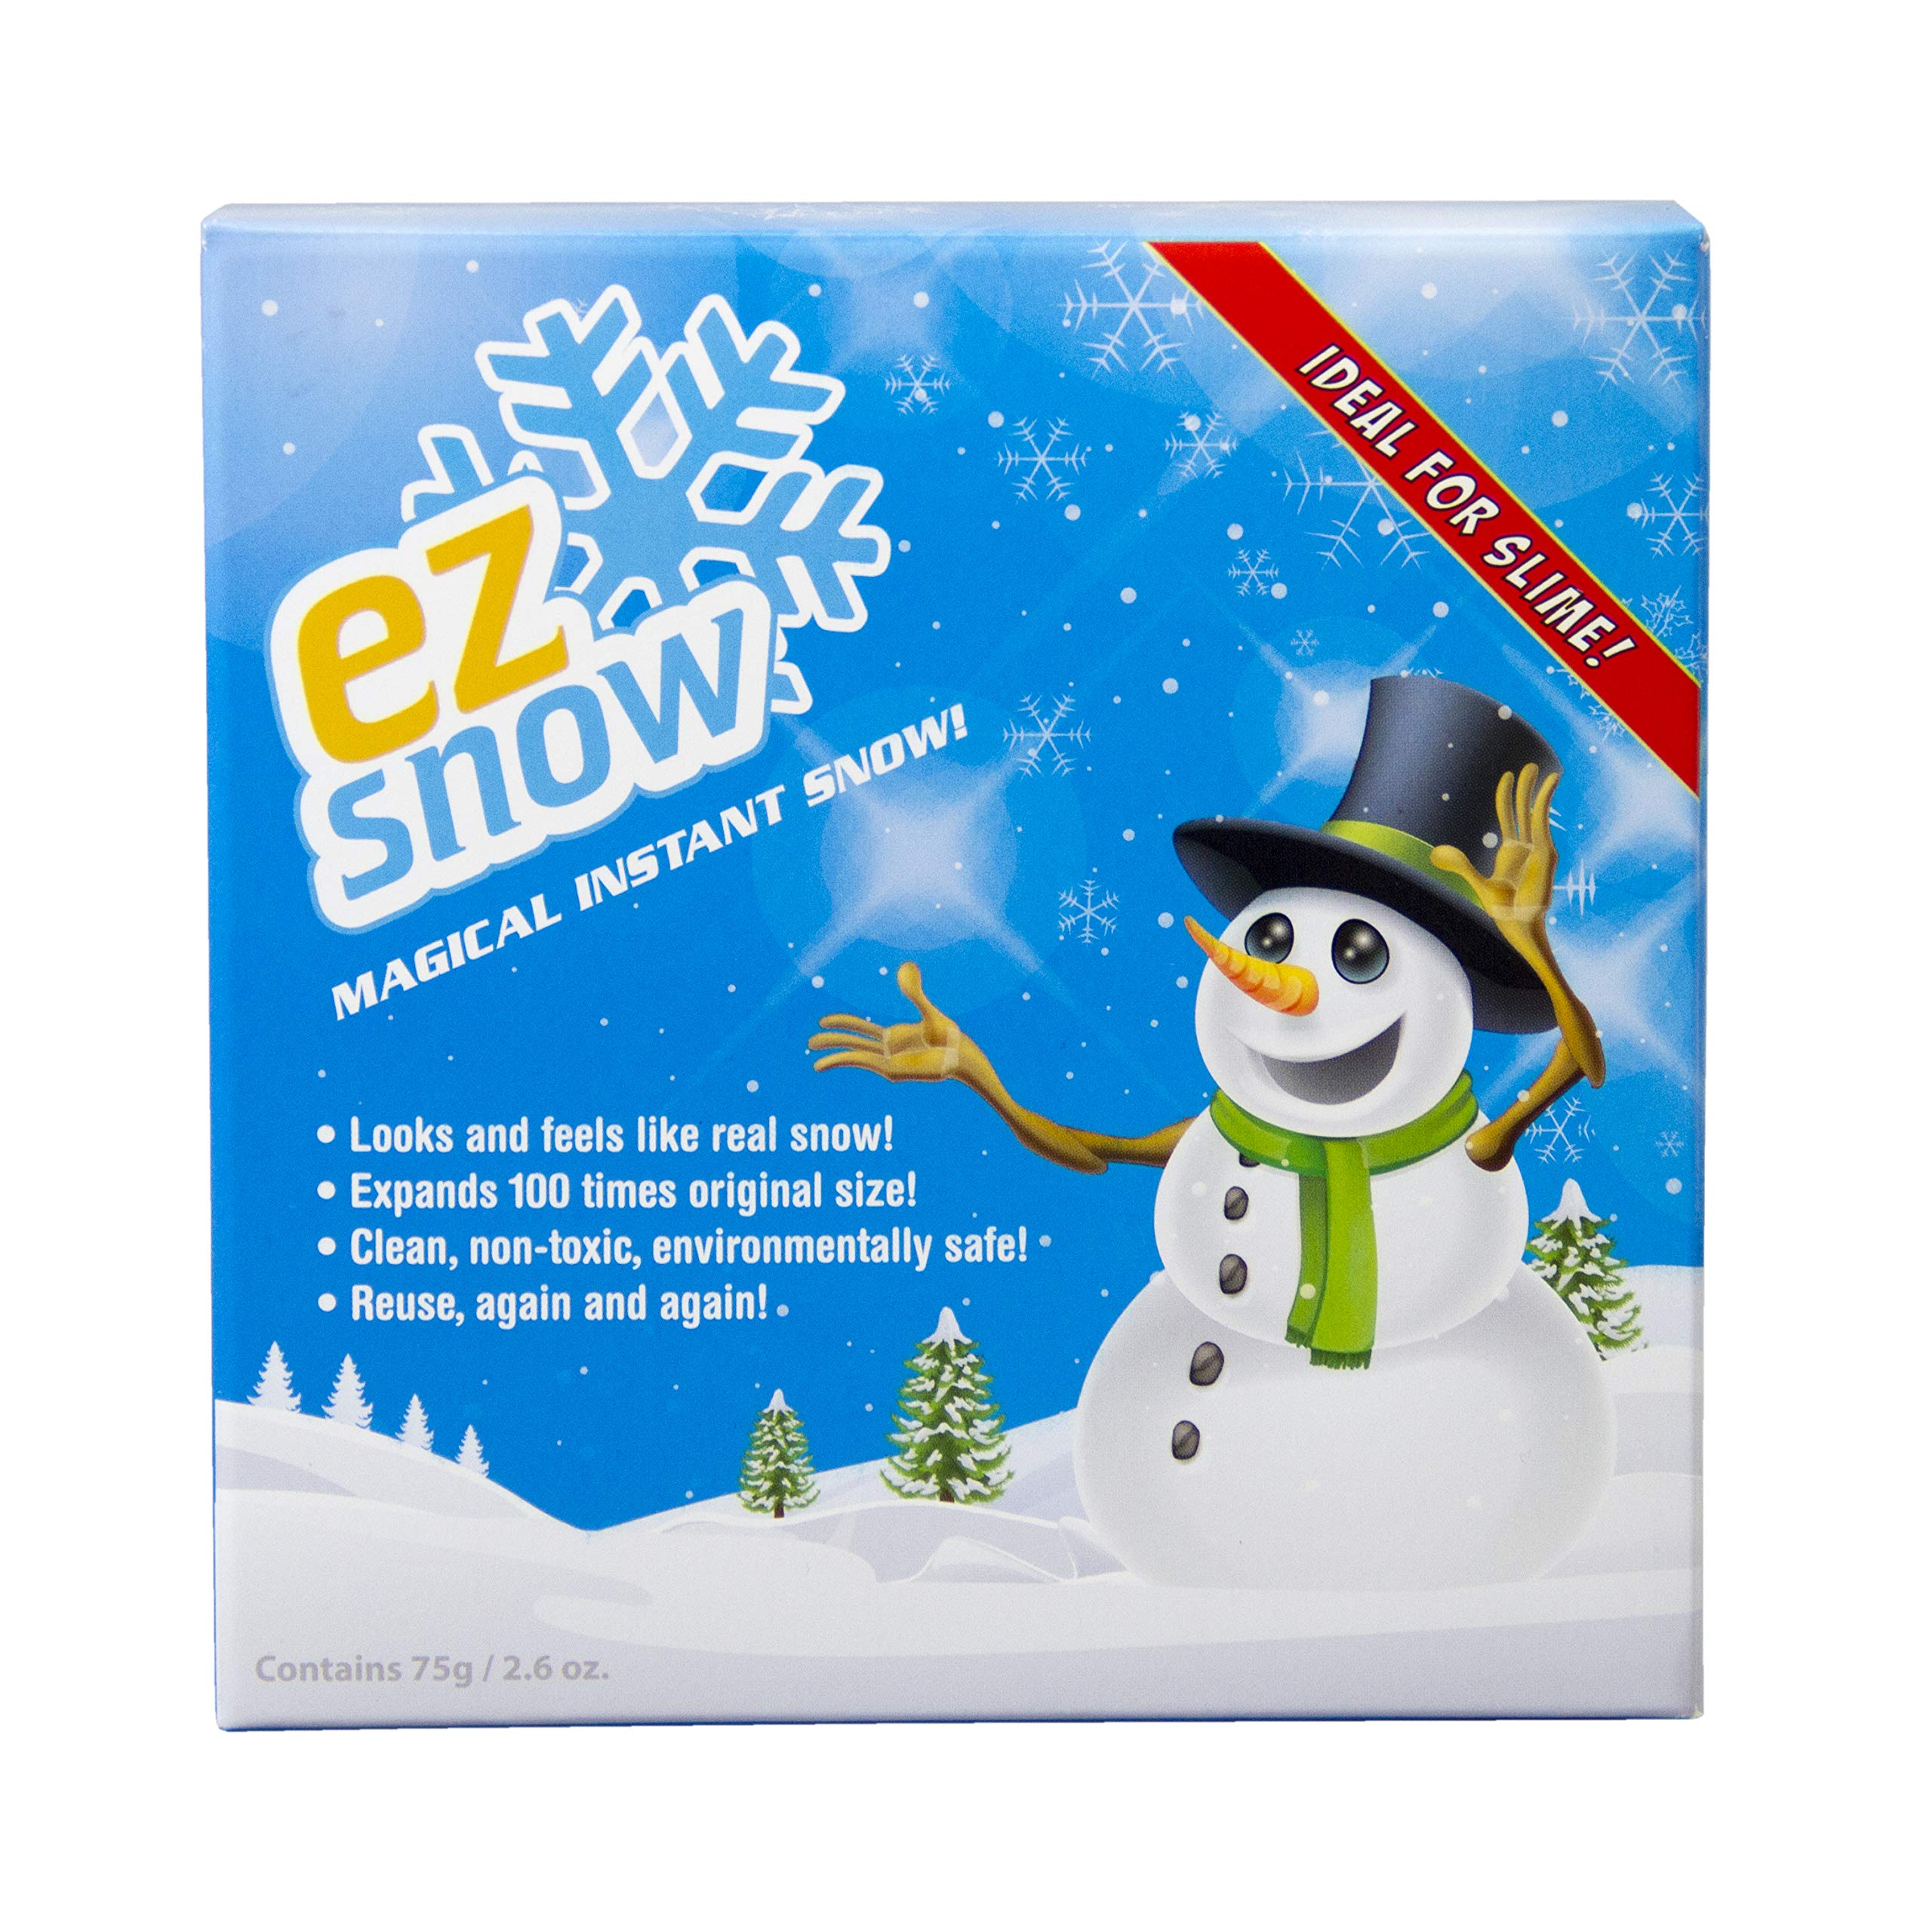 EZ Snow Magical Instant Snow, Looks and feels like real snow, Expands 100 times original size, Clean, non-toxic, environmentally safe, Reuse, again and again. Makes up to 2 gallons. Works with Slime!